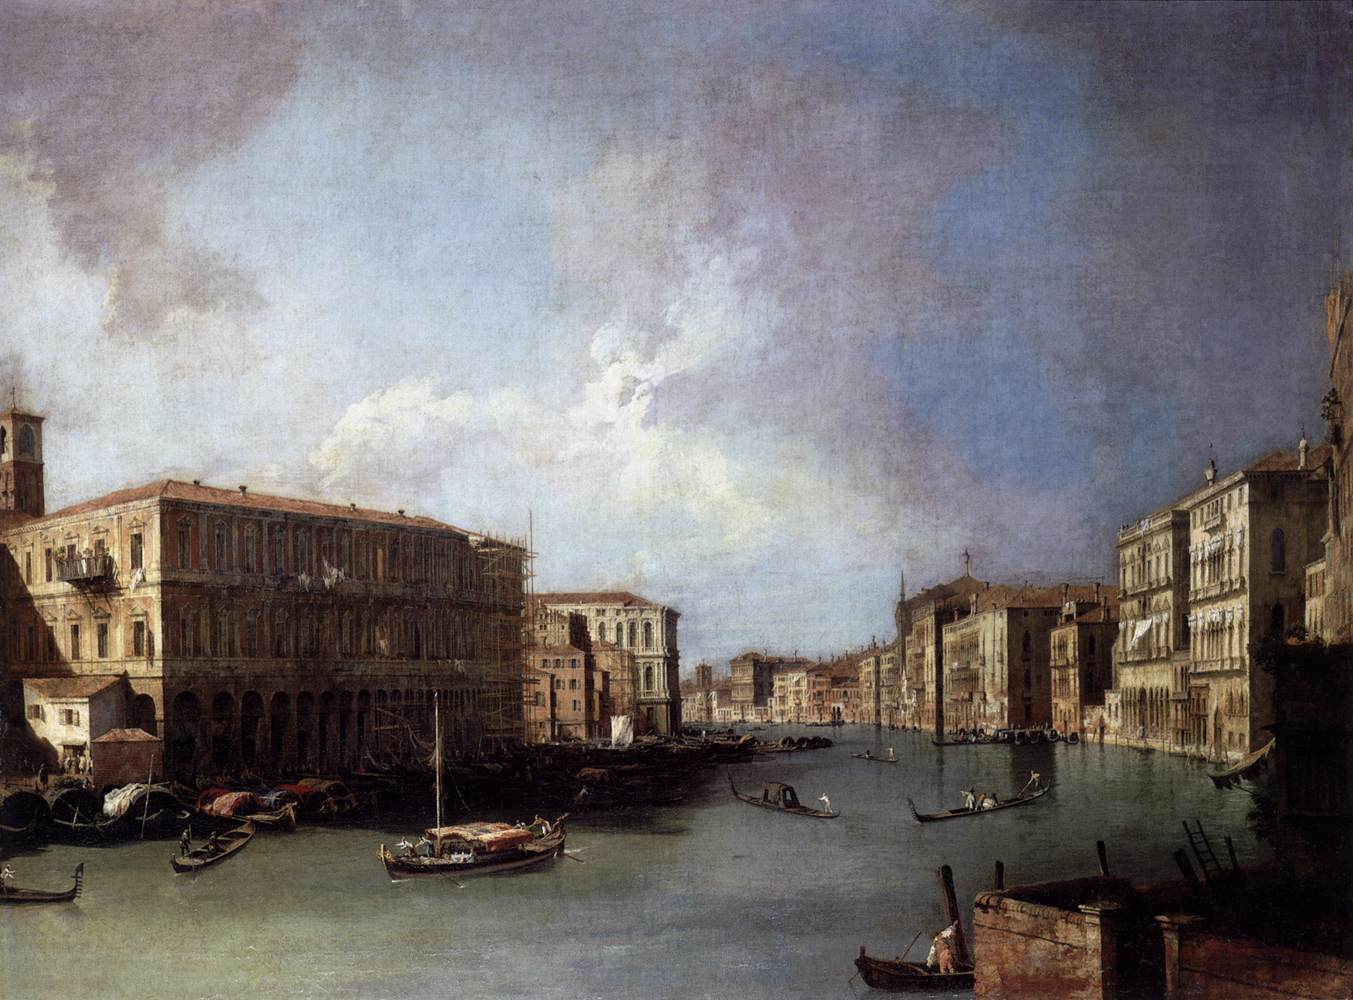 Grand Canal: Looking North from Near the Rialto Bridge